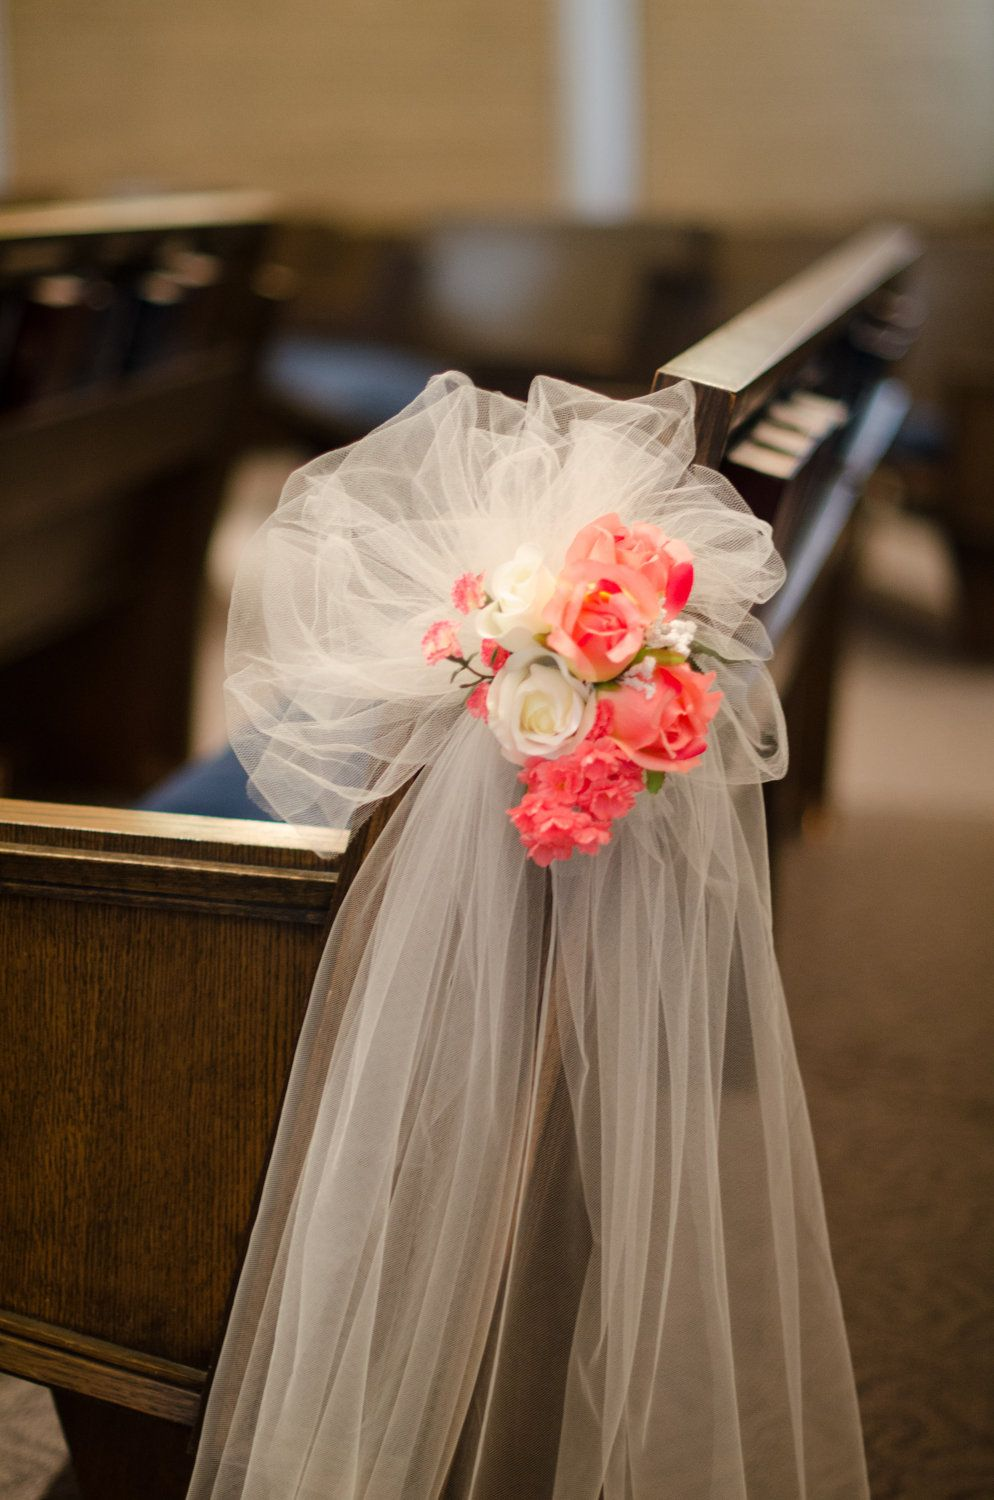 Wedding Aisle Decoration Pew Bow Coral Flowers Pink White Set of